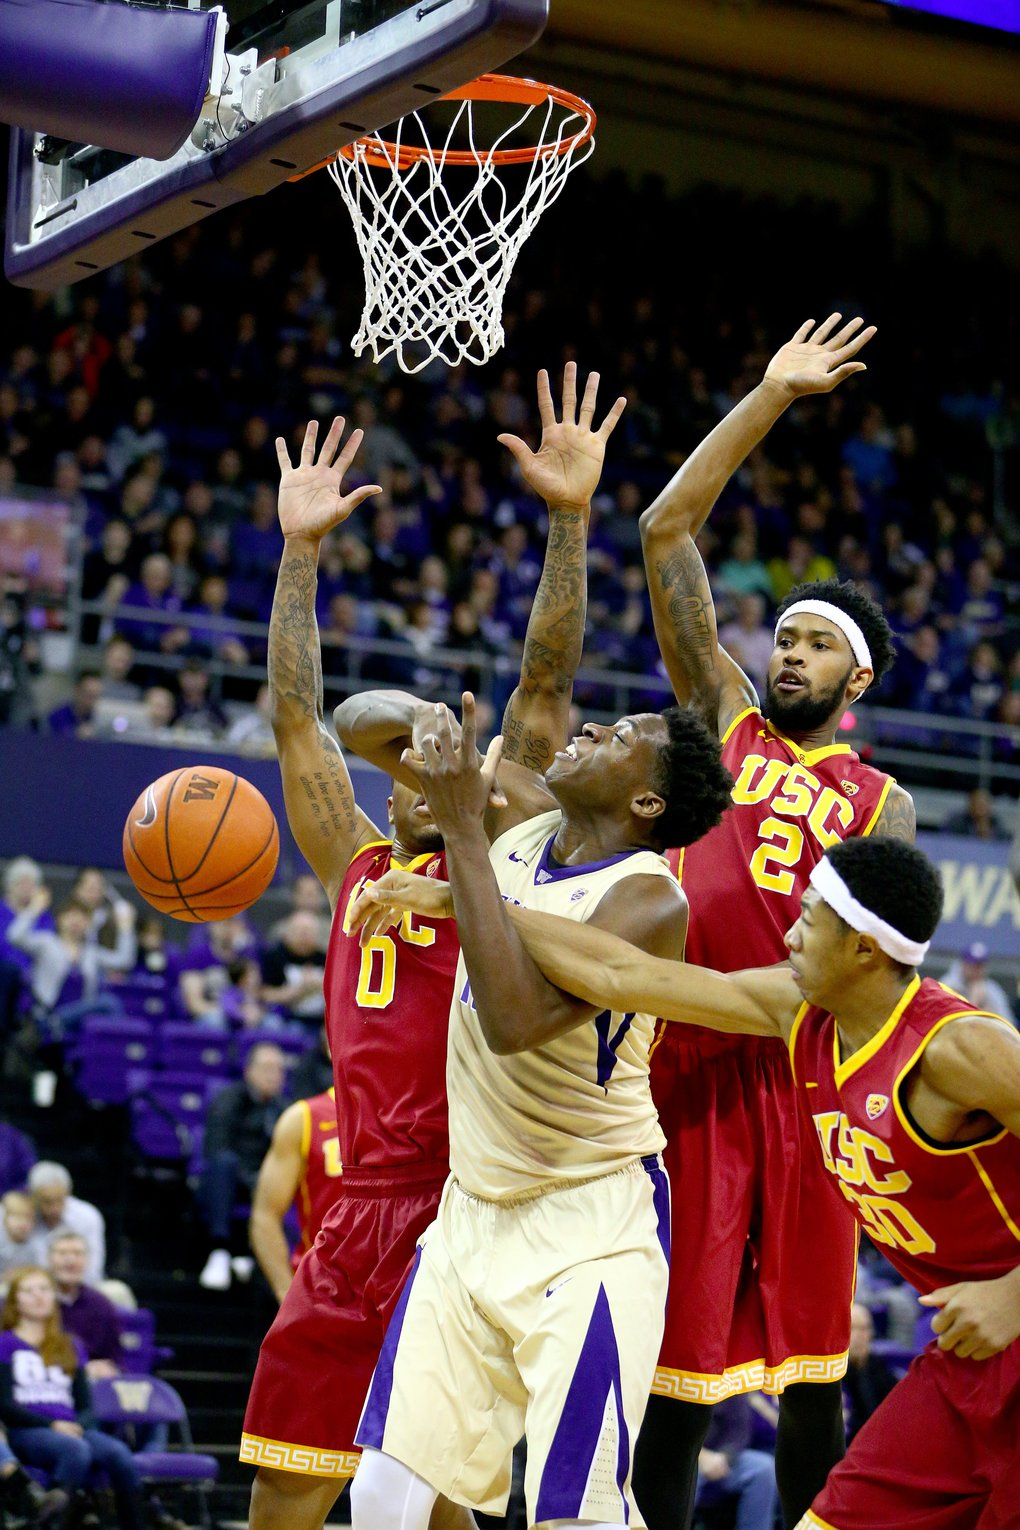 Washington's Noah Dickerson is caught in a triple-team under the basket in the first half. (John Lok/The Seattle Times)